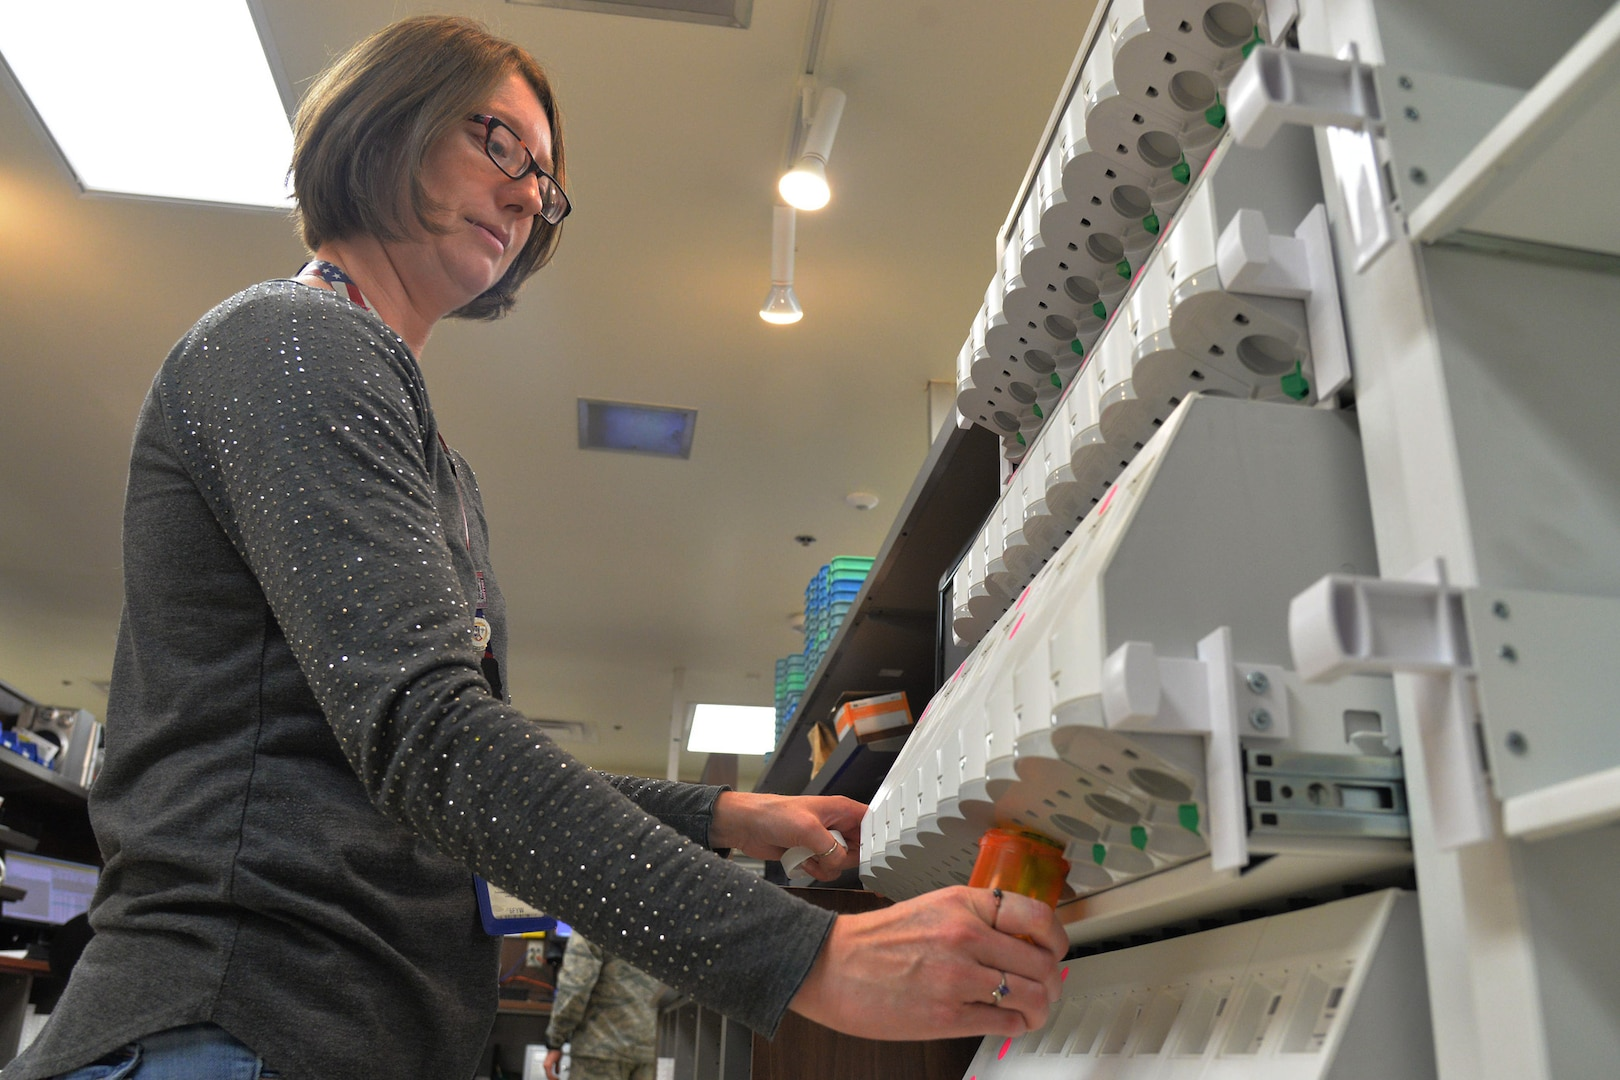 Jessica Gaines, 341st Medical Support Squadron pharmacy technician, fills a prescription using an automated drug dispensing cabinet Aug. 14, 2017, at Malmstrom Air Force Base, Mont.